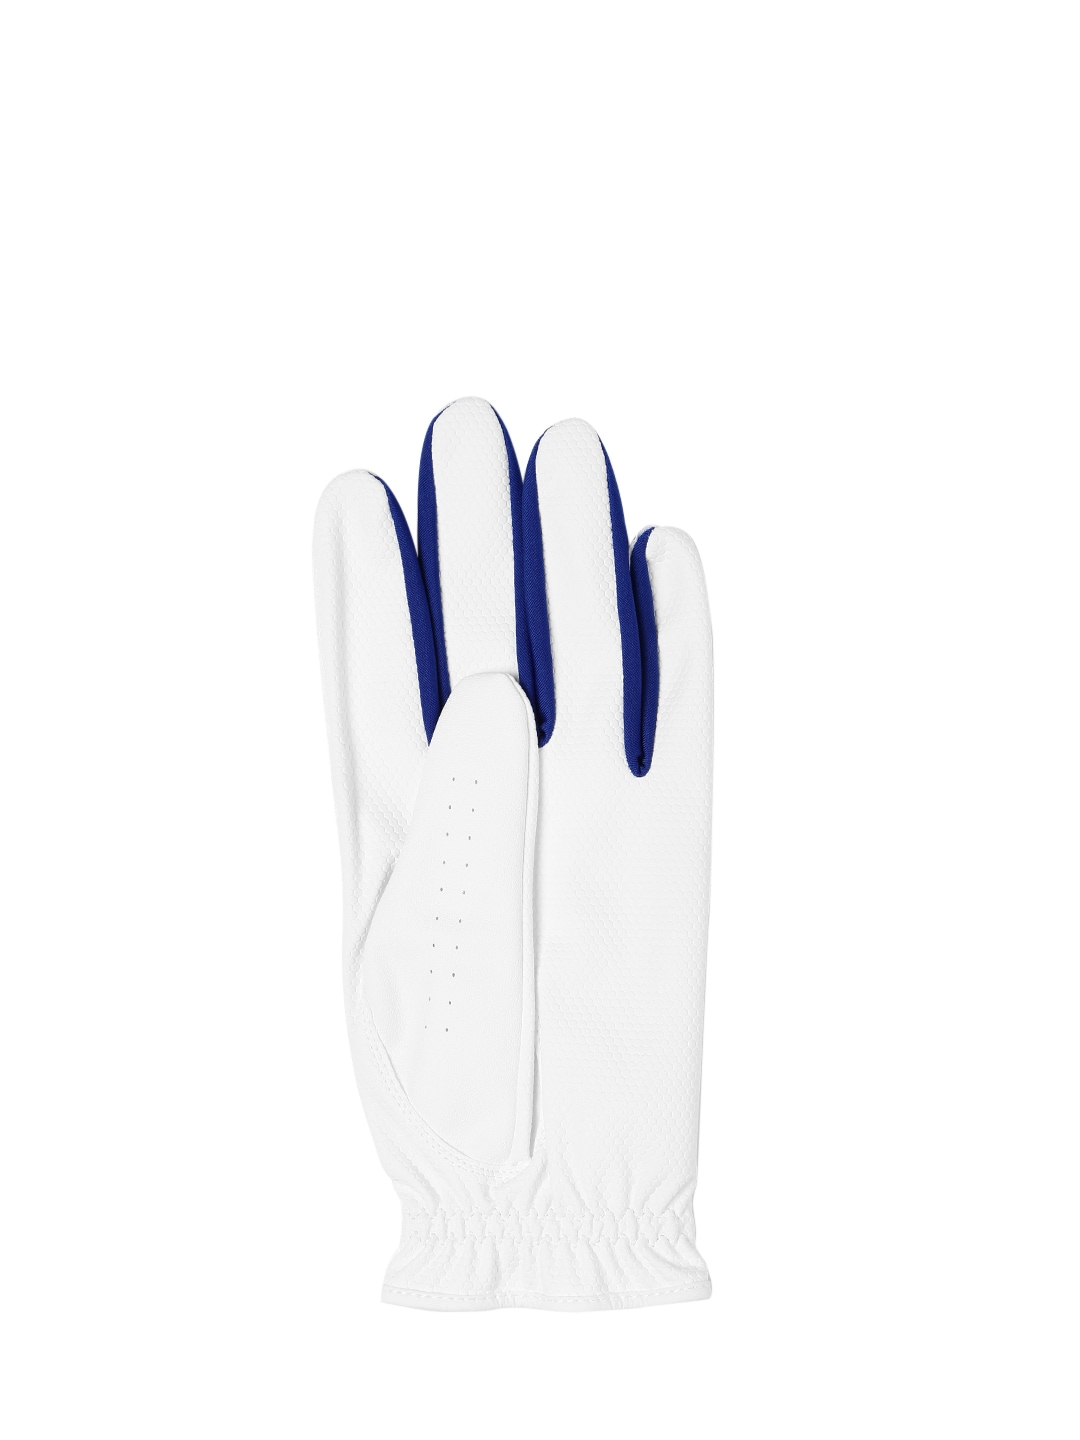 Motorcycle gloves online india -  Puma Motorcycle Gloves Gloves Men S Gloves Gloves For Men Online In India